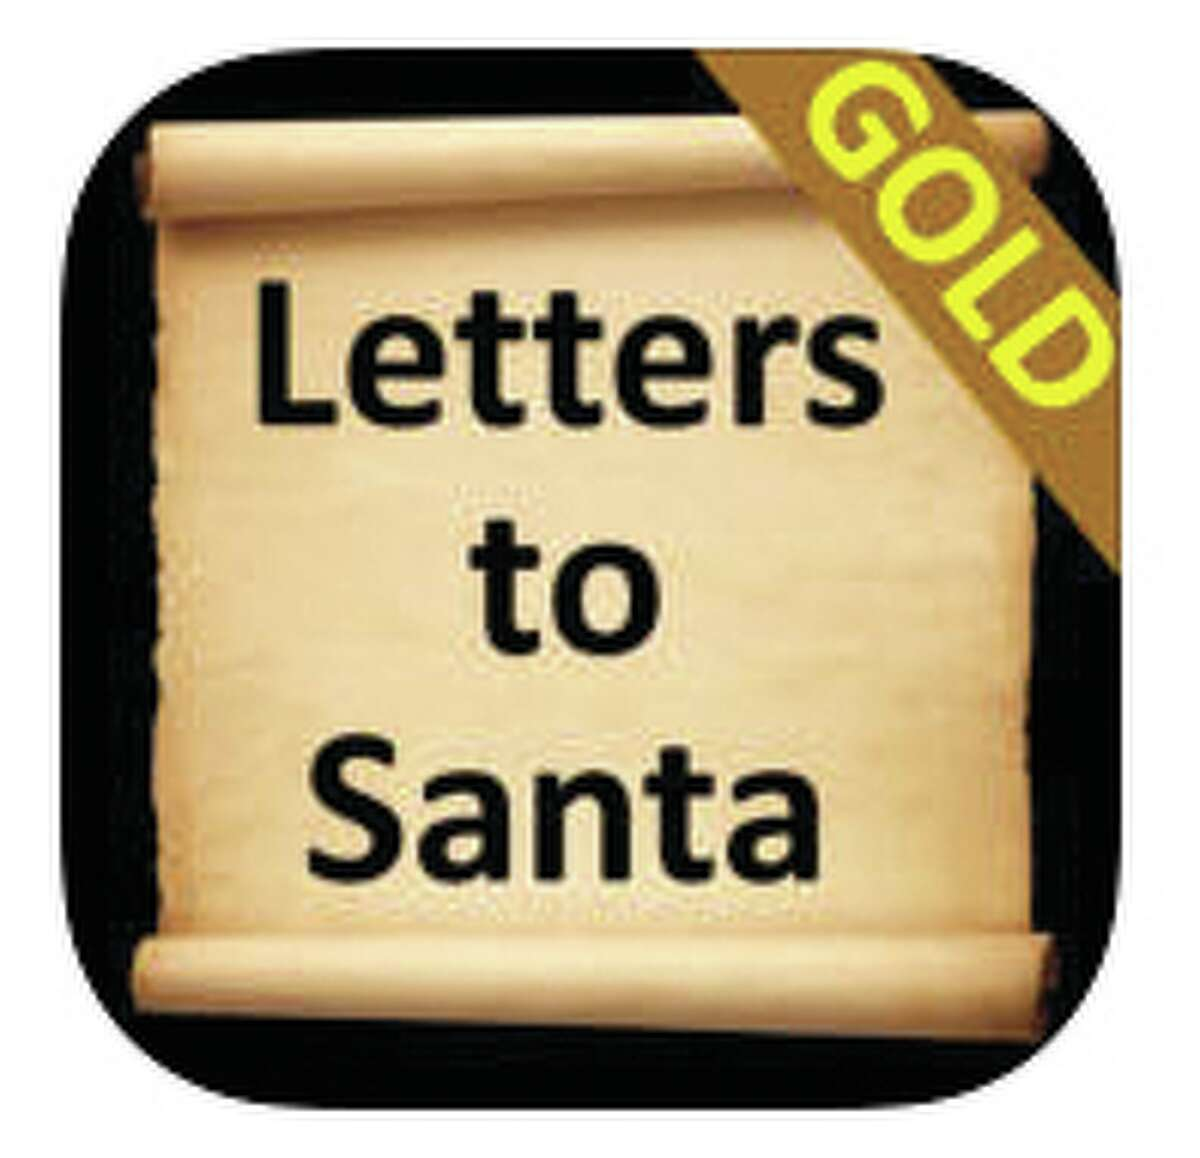 Letters to Santa Gold app